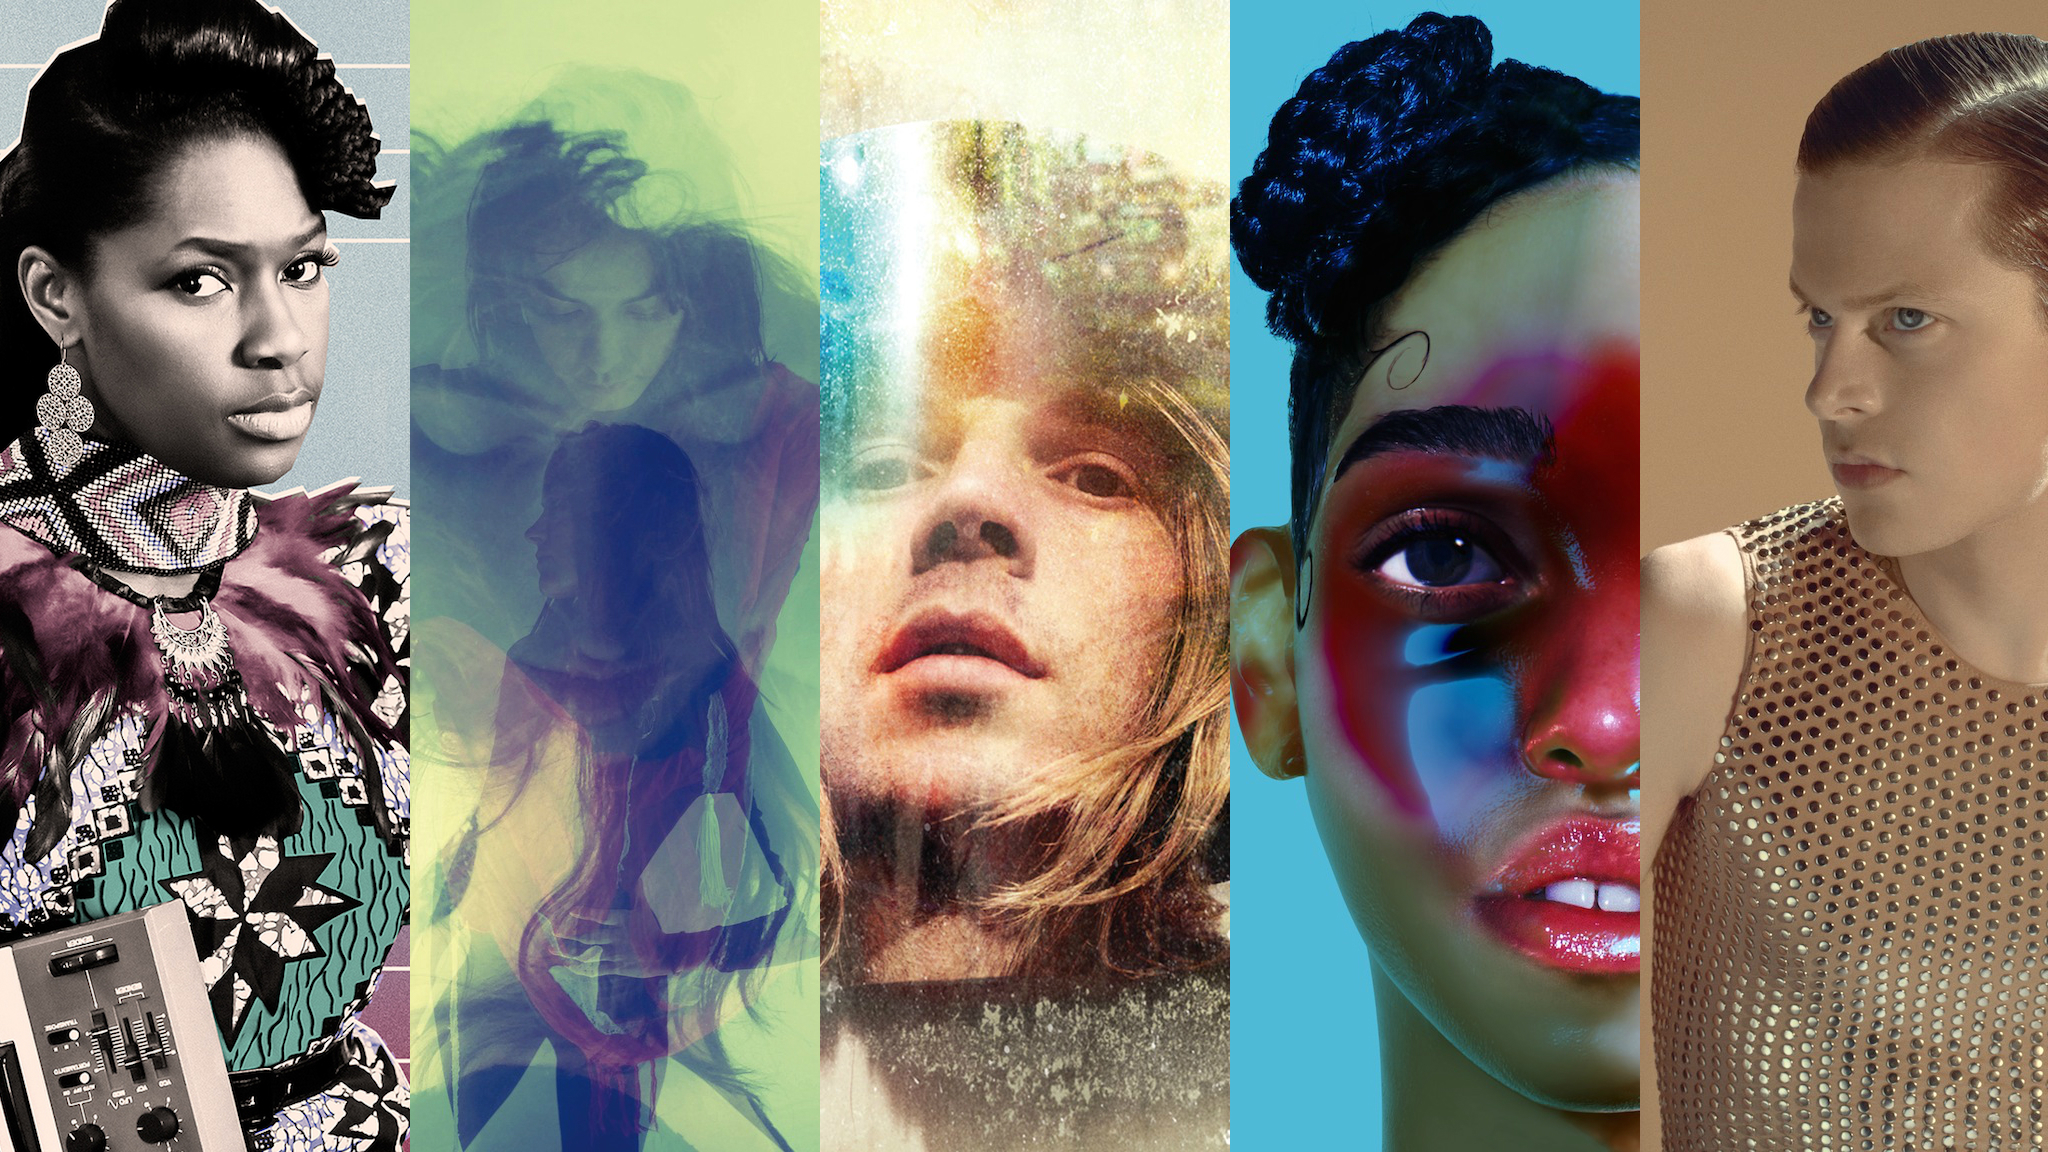 The 30 best albums of 2014